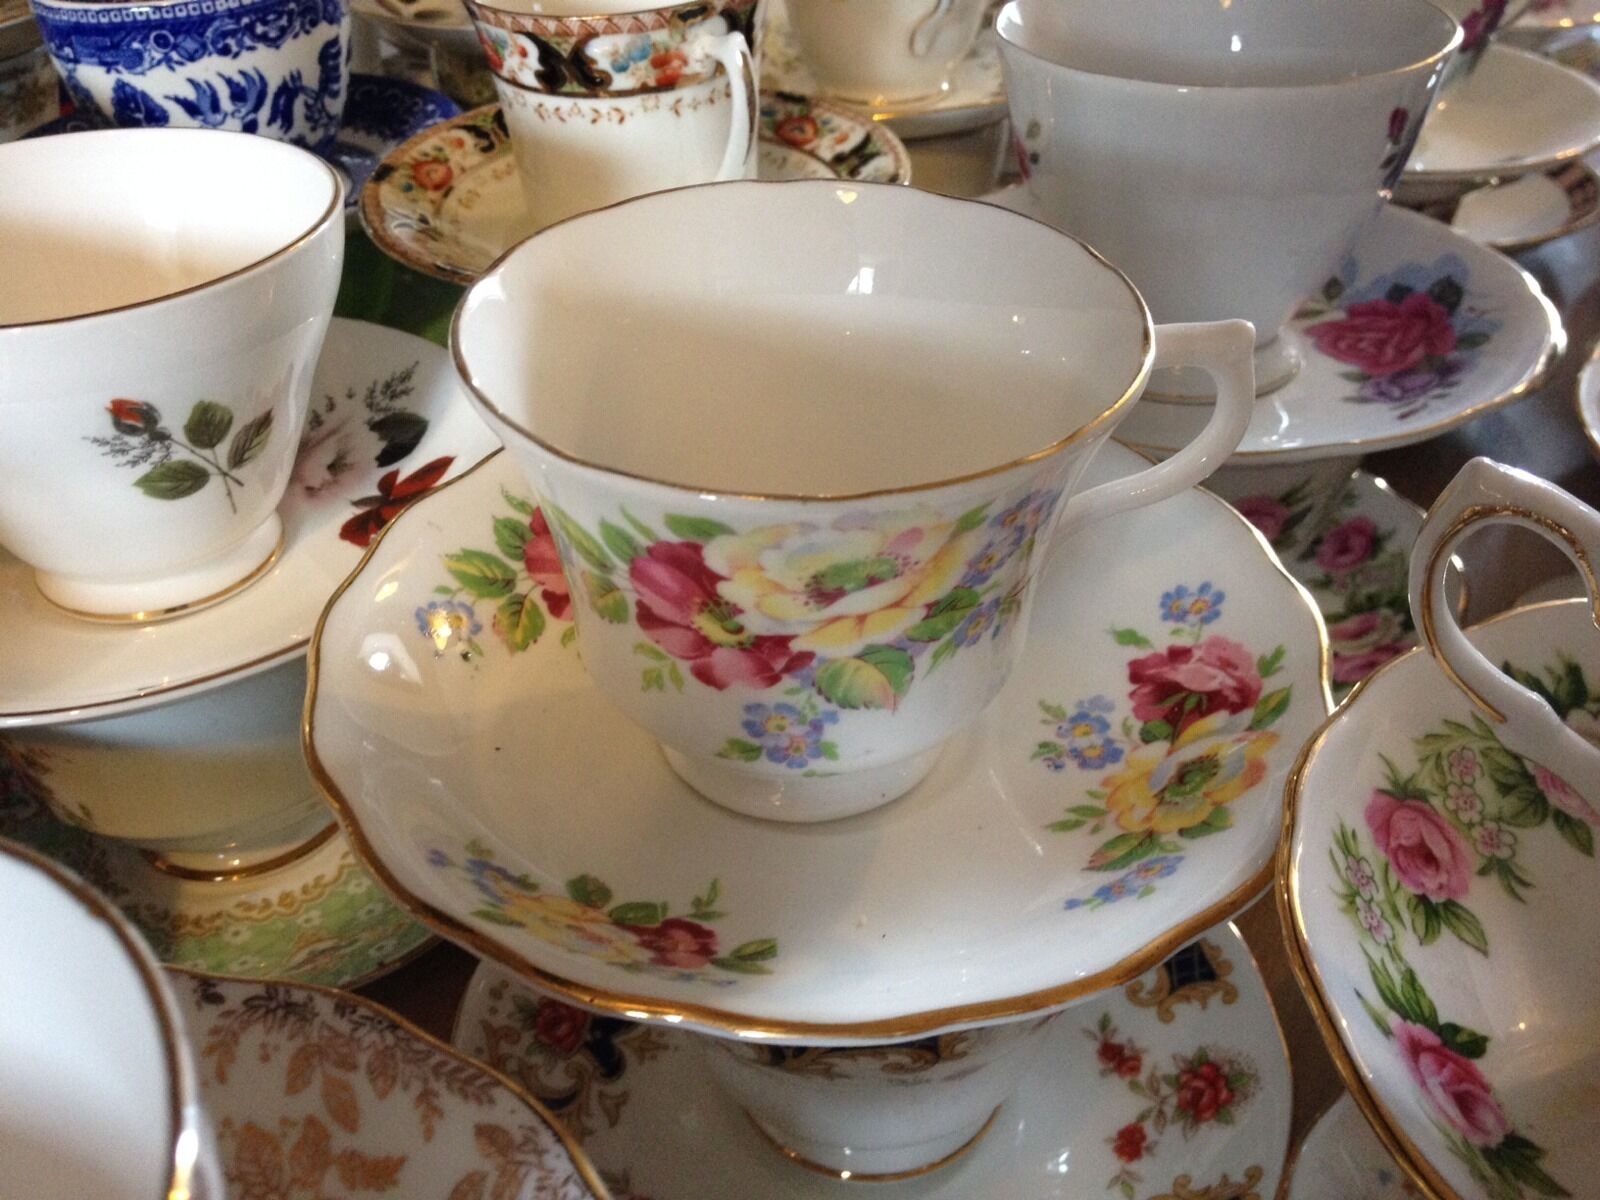 Job lot 10 Pretty Vintage Tea Cups & Saucers- Ideal for use at Weddings